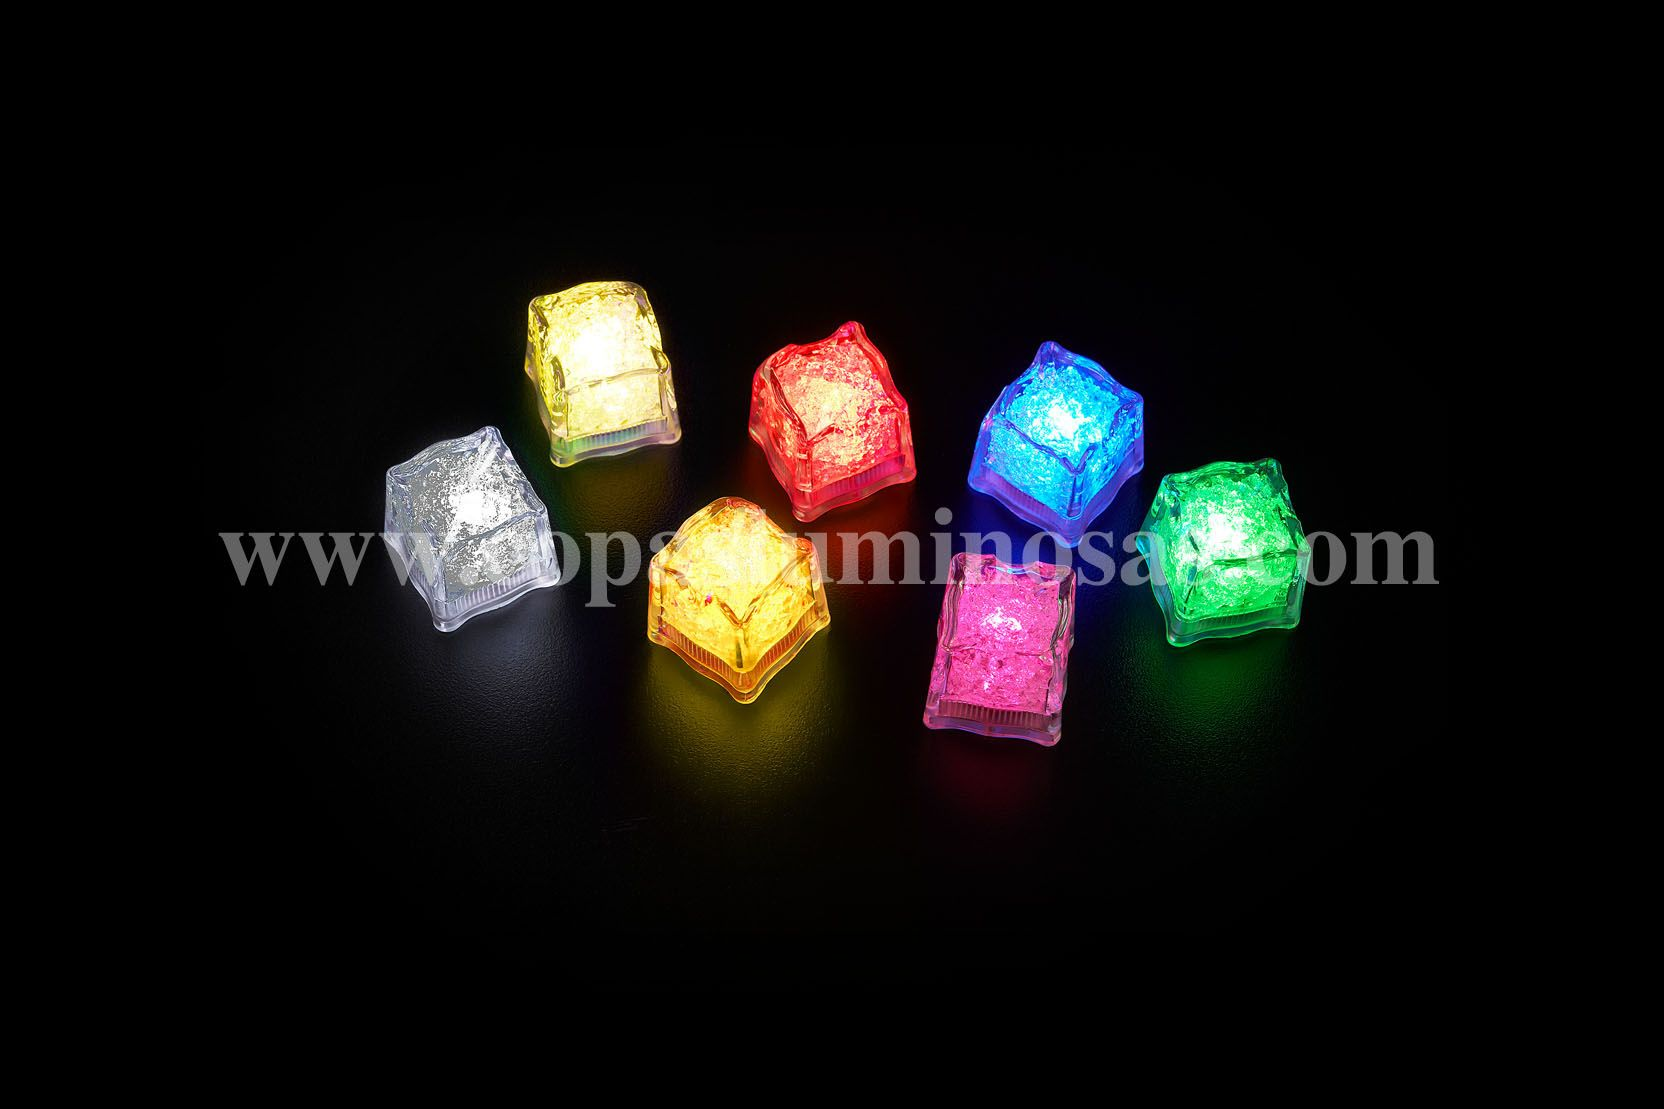 For parties, bars and clubs. Our cubes have jelly inside